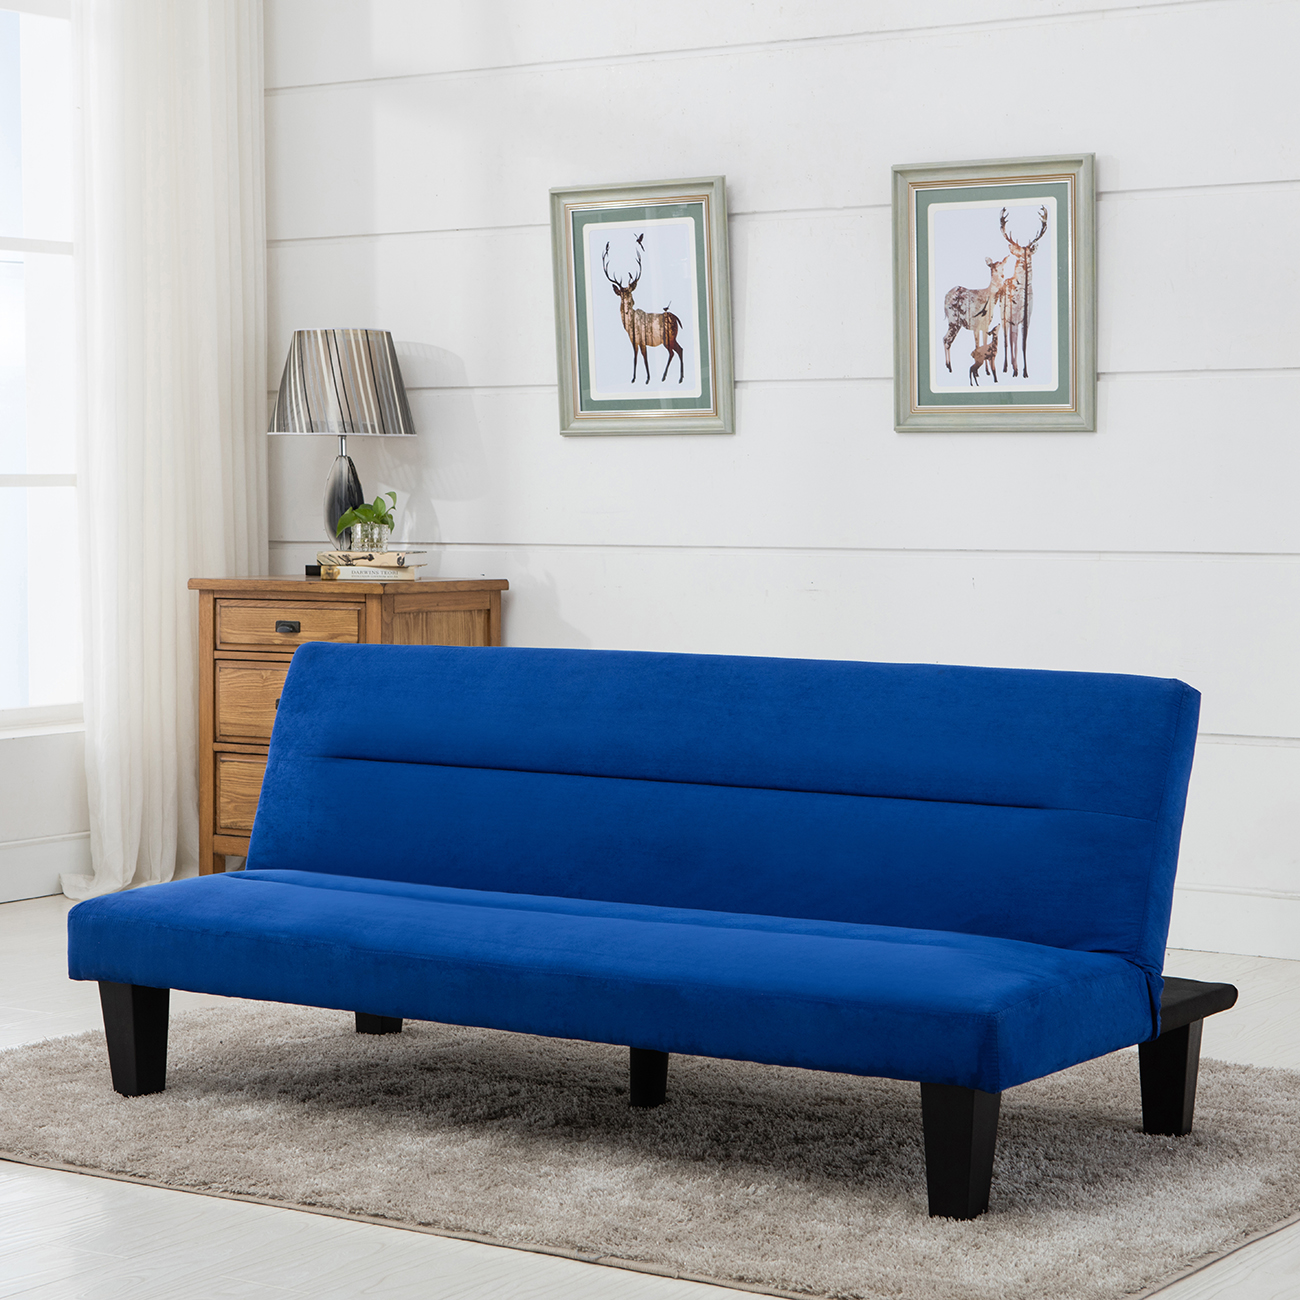 Modern Futon Modern Style Sofa Bed Futon Couch Sleeper Lounge Sleep